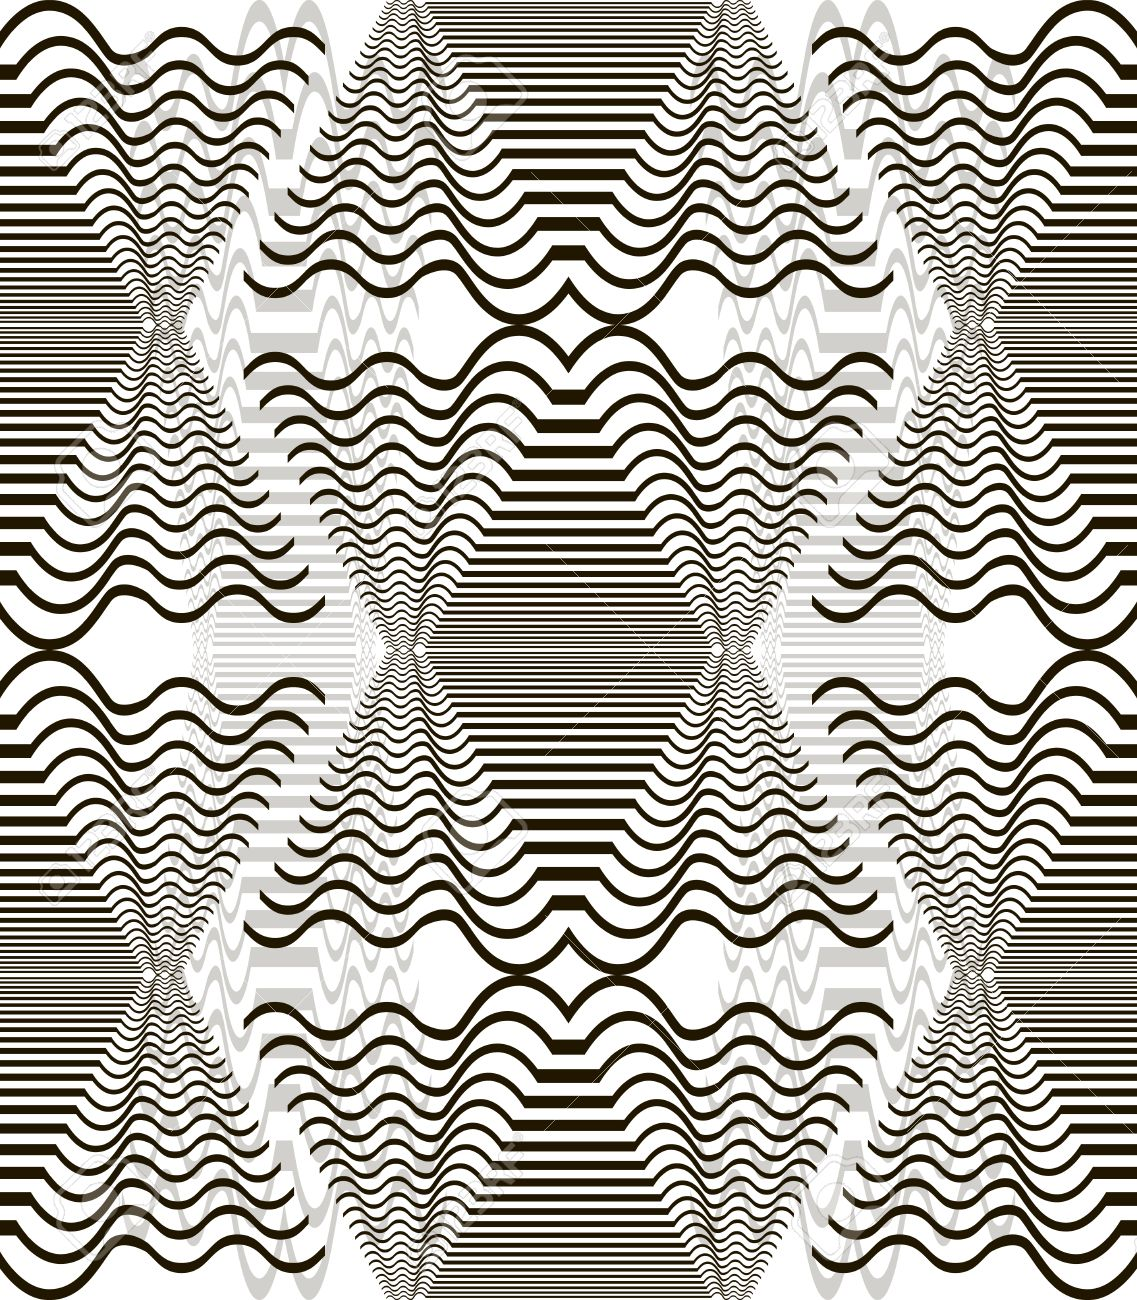 Seamless Pattern Of Wavy Elements. Horizontal Lines Forming.